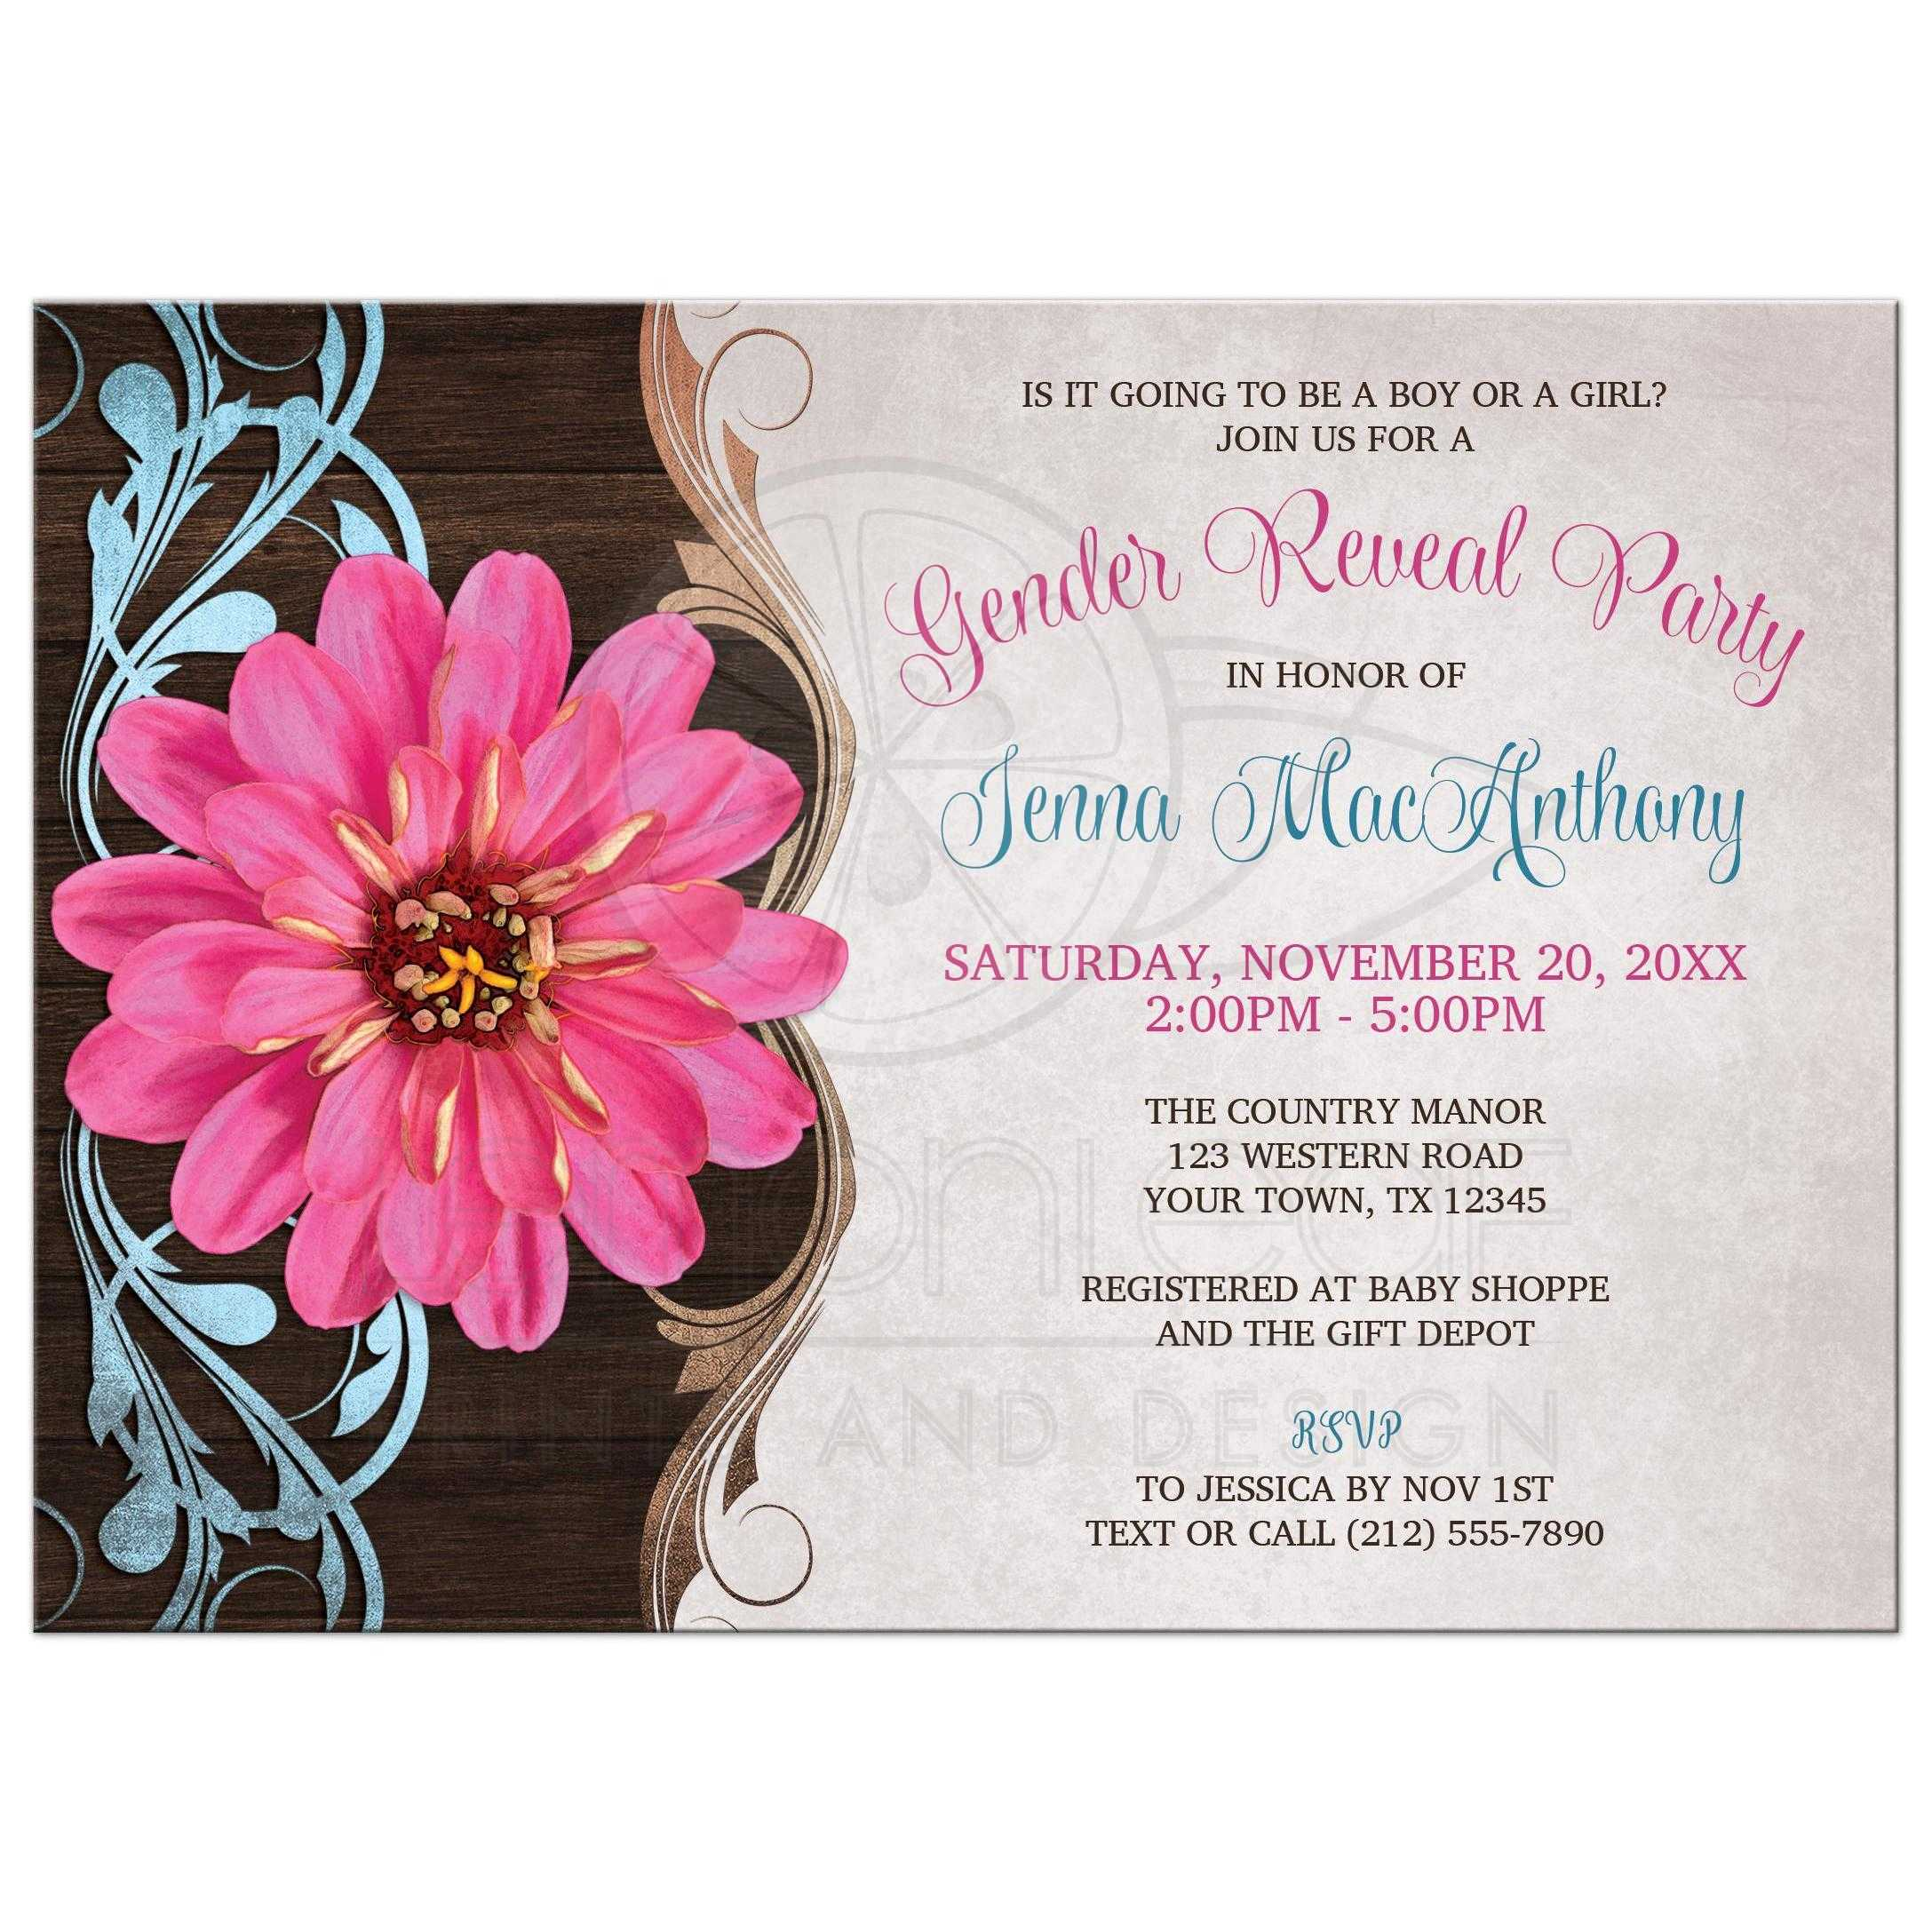 Gender Reveal Party Invitations Rustic Country Pink Zinnia